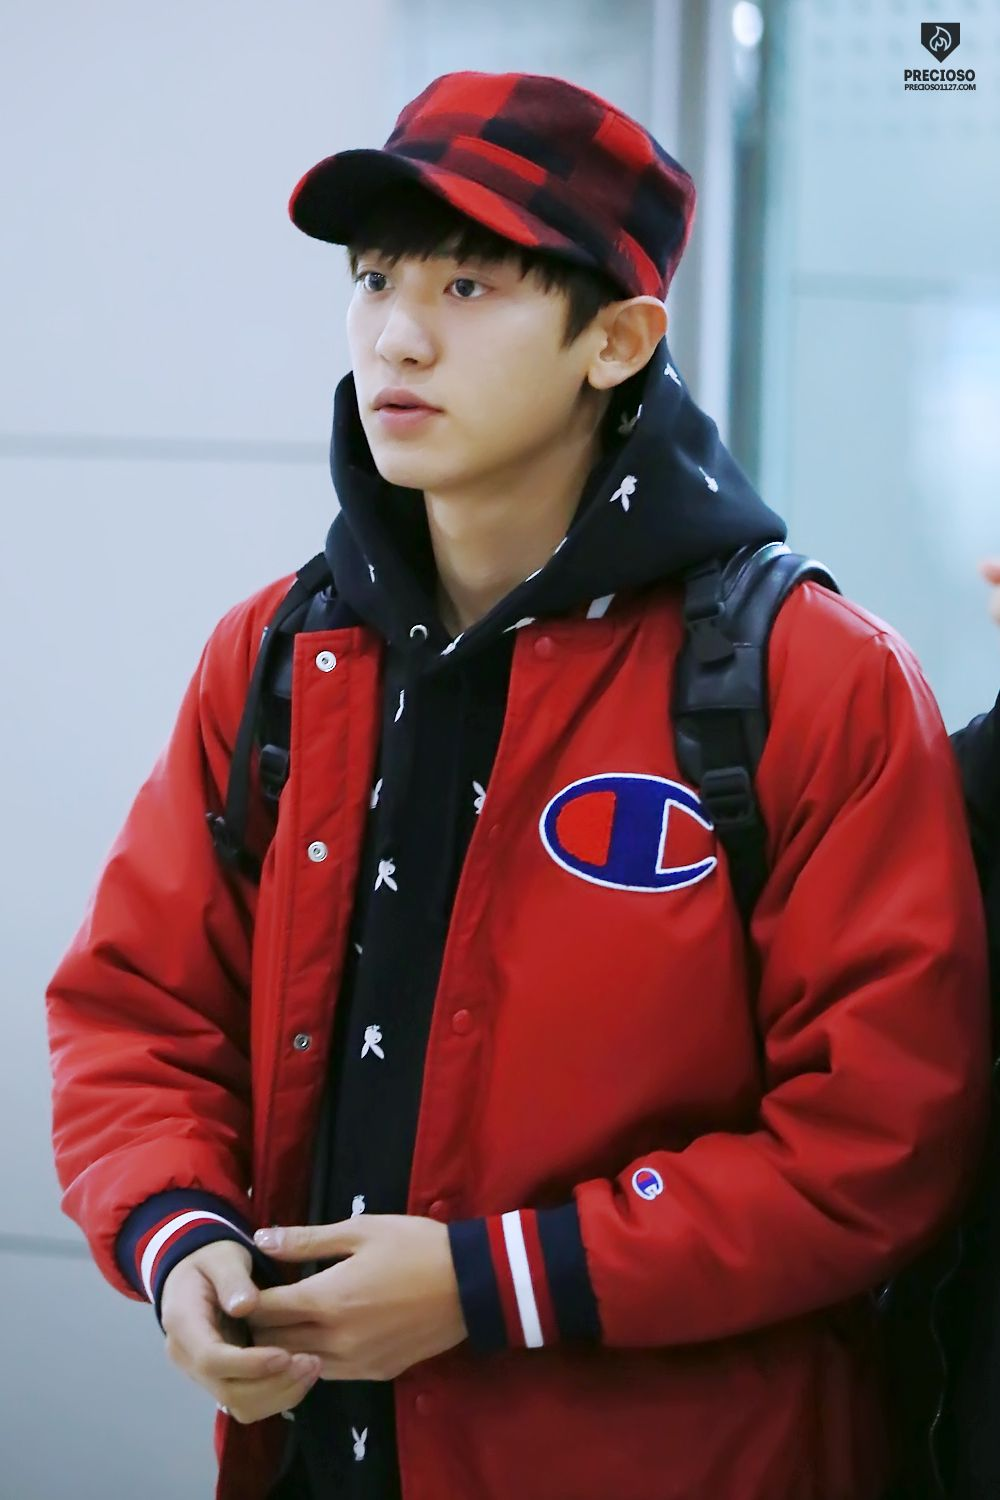 Chanyeol - 151109 Gimpo Airport, departing for Shanghai Credit: Precioso. (김포공항 출국)